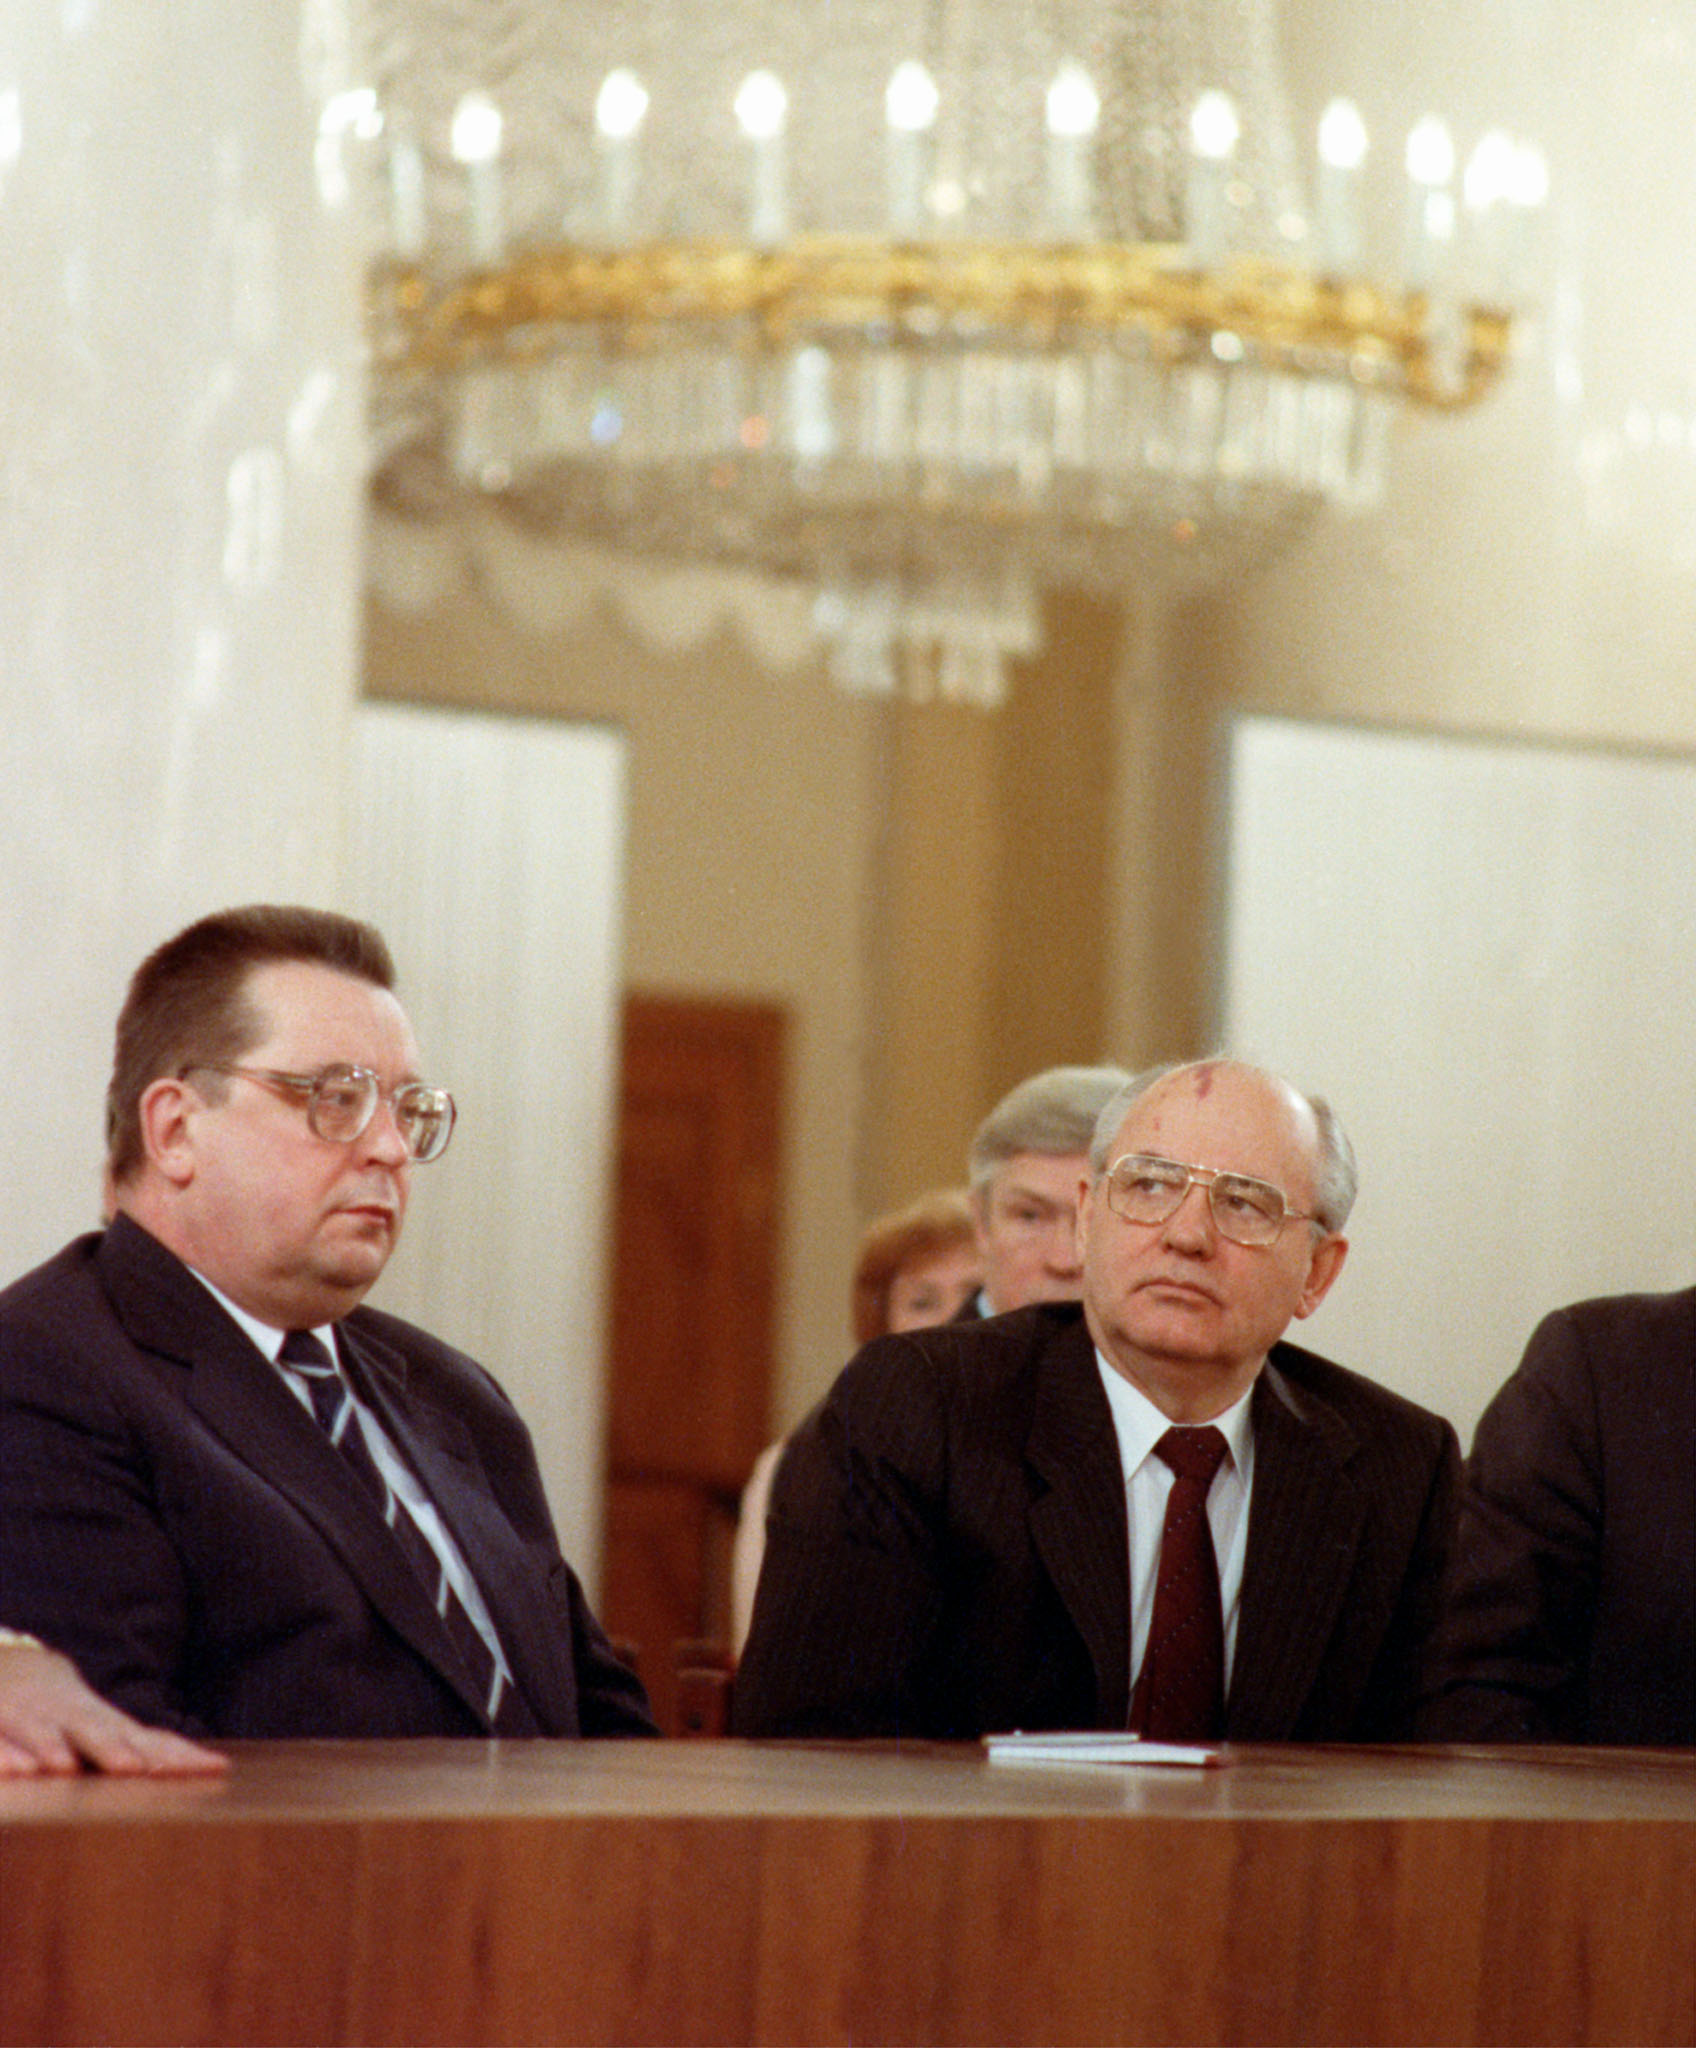 Mikhail Gorbachev and Valentin Pavlov at All-Union congress of directors, 1991